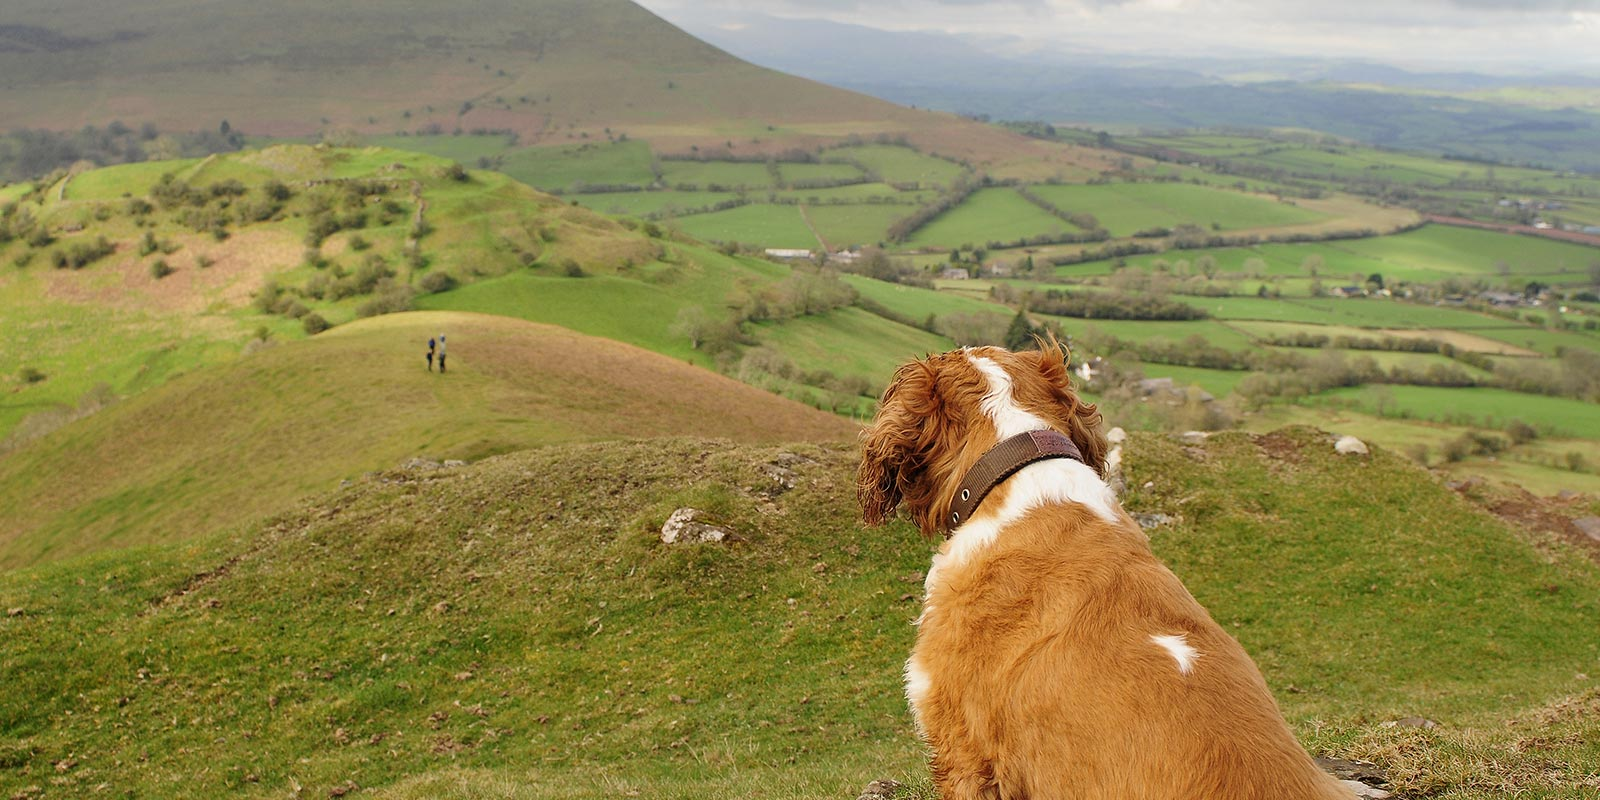 Watching over the Beacons landscape